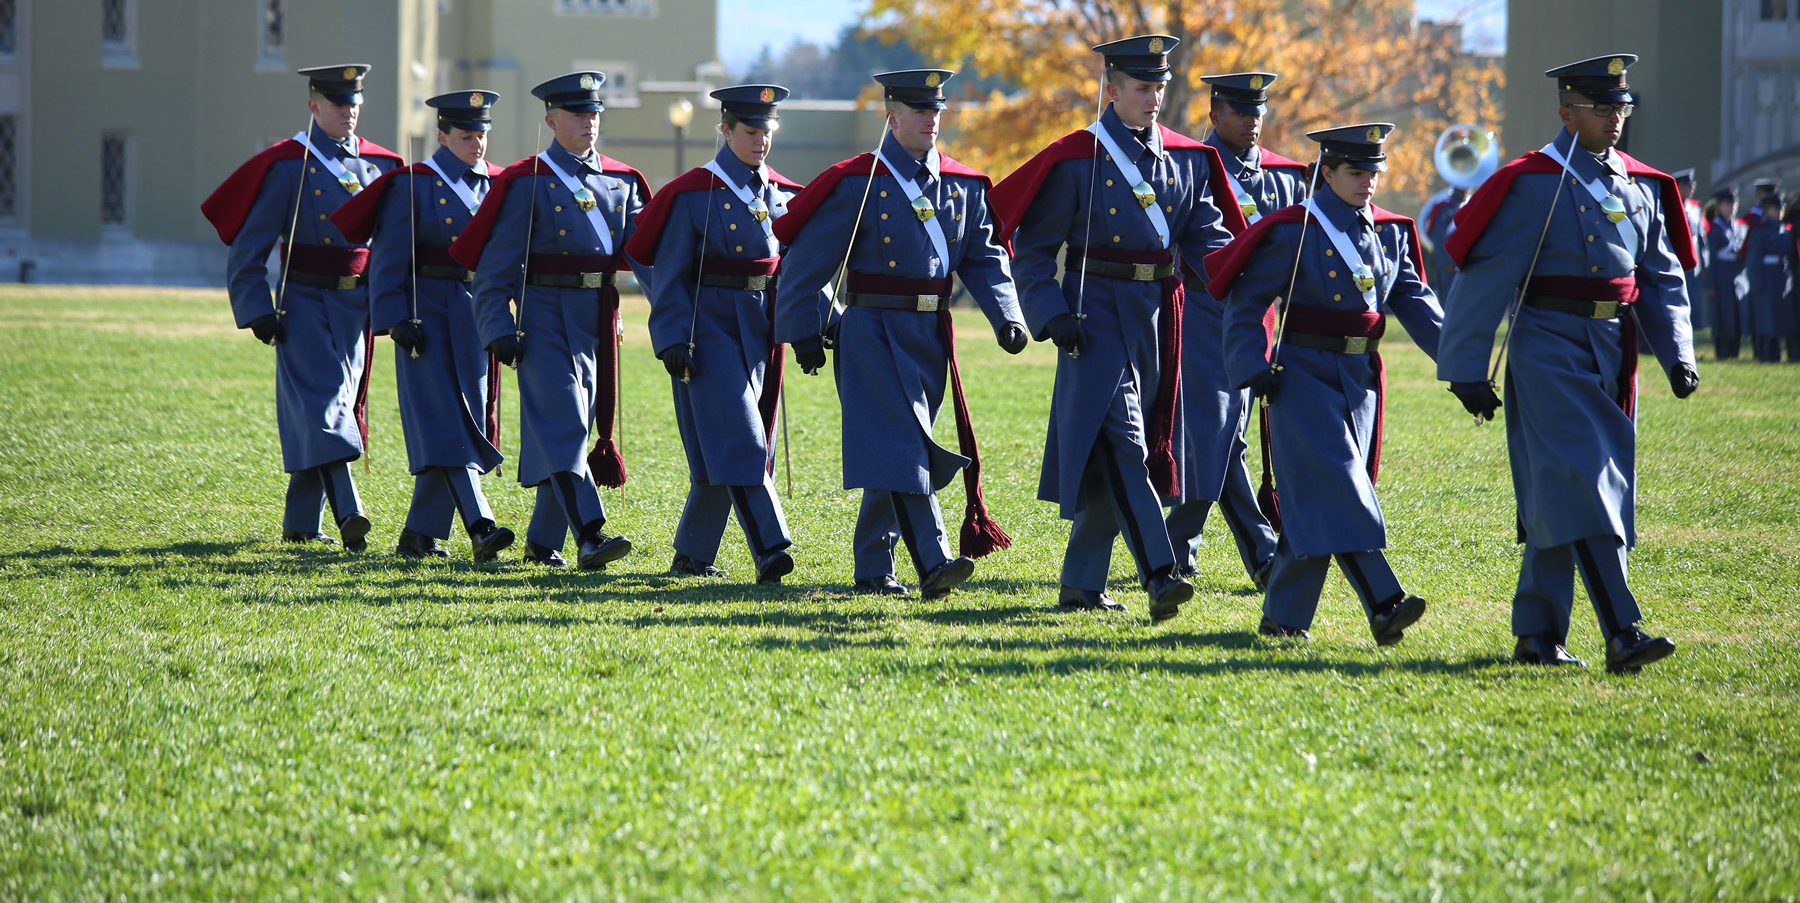 Cadets marching on lawn at Post